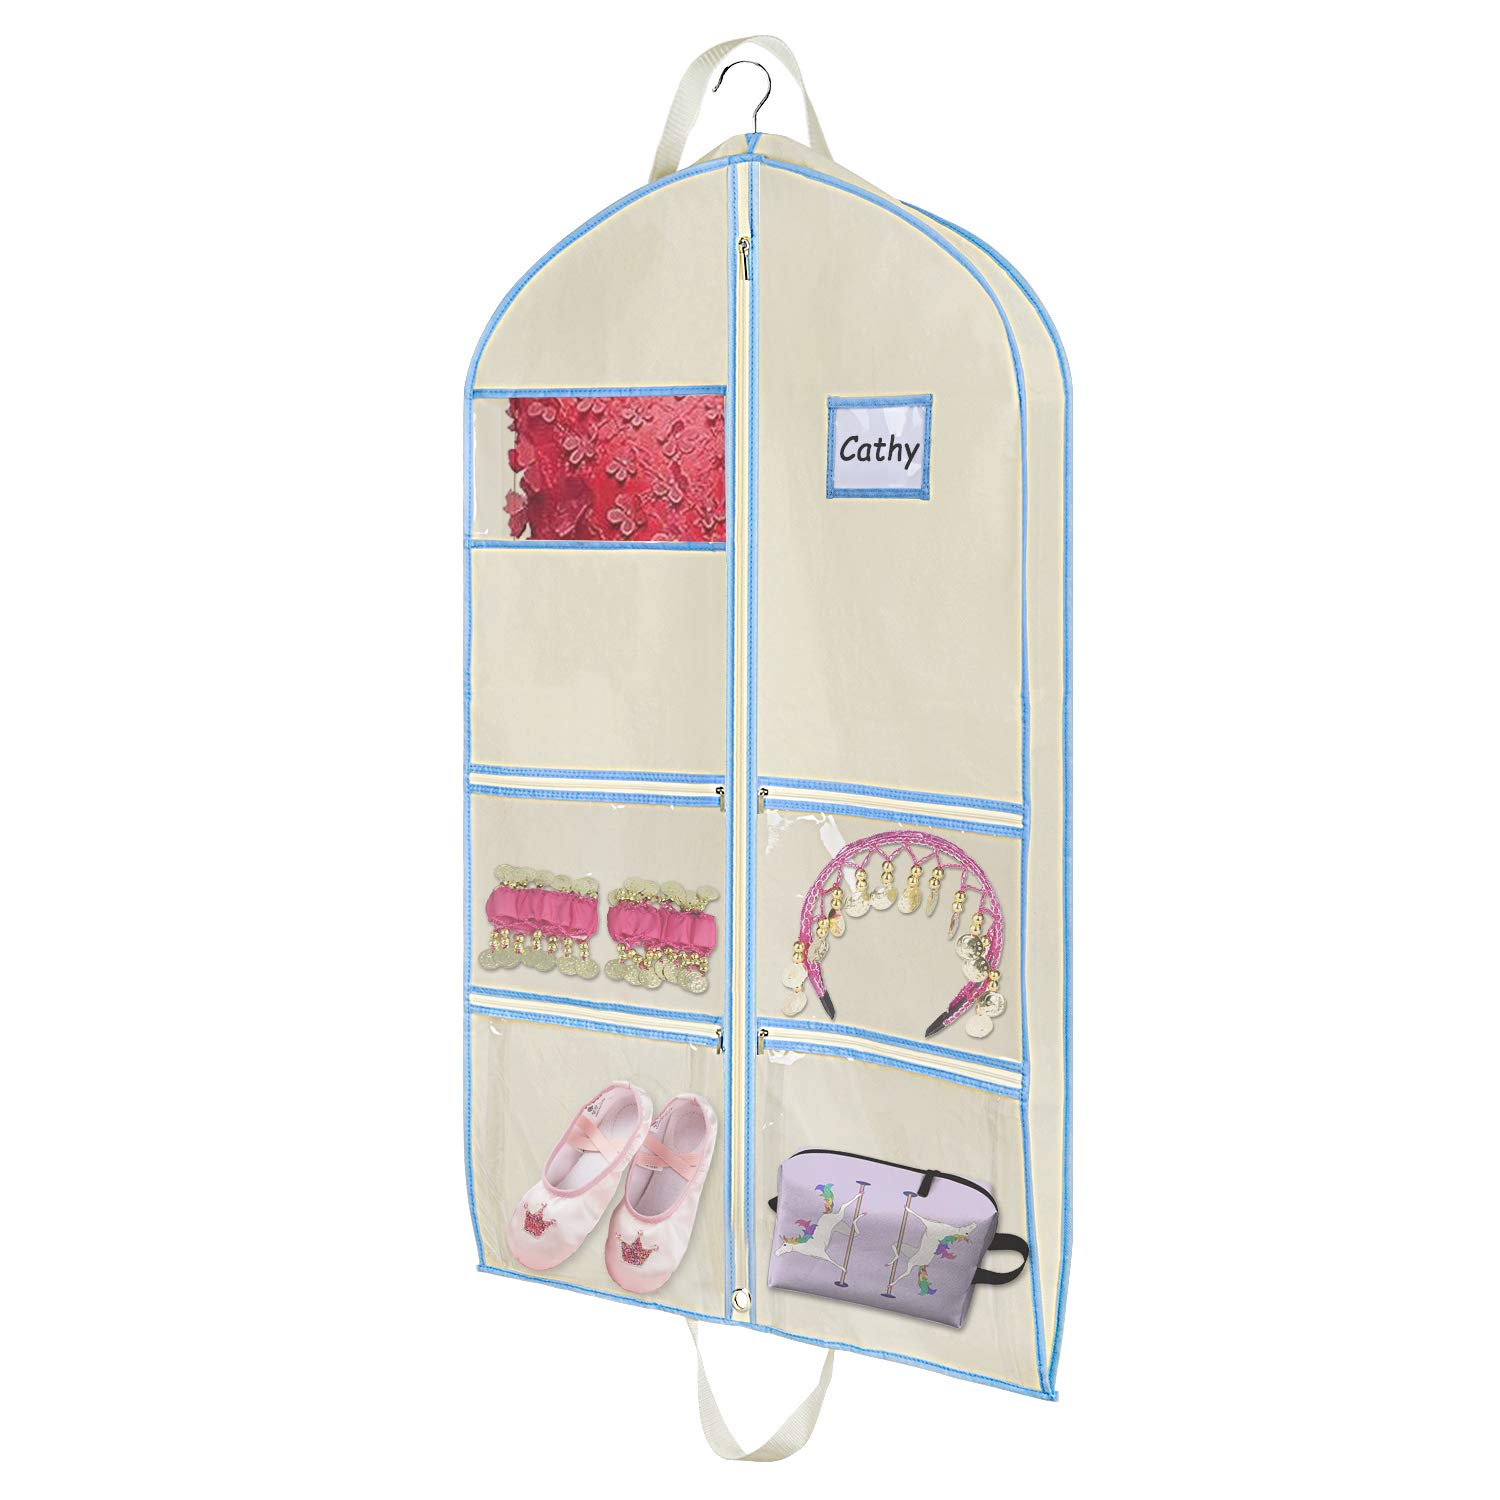 Zilink Dance Costume Garment Bag with Zipper Pockets and Handles for Children Dance Competition Carrying and Closet Storage (24'' x 40'' x 3'') …